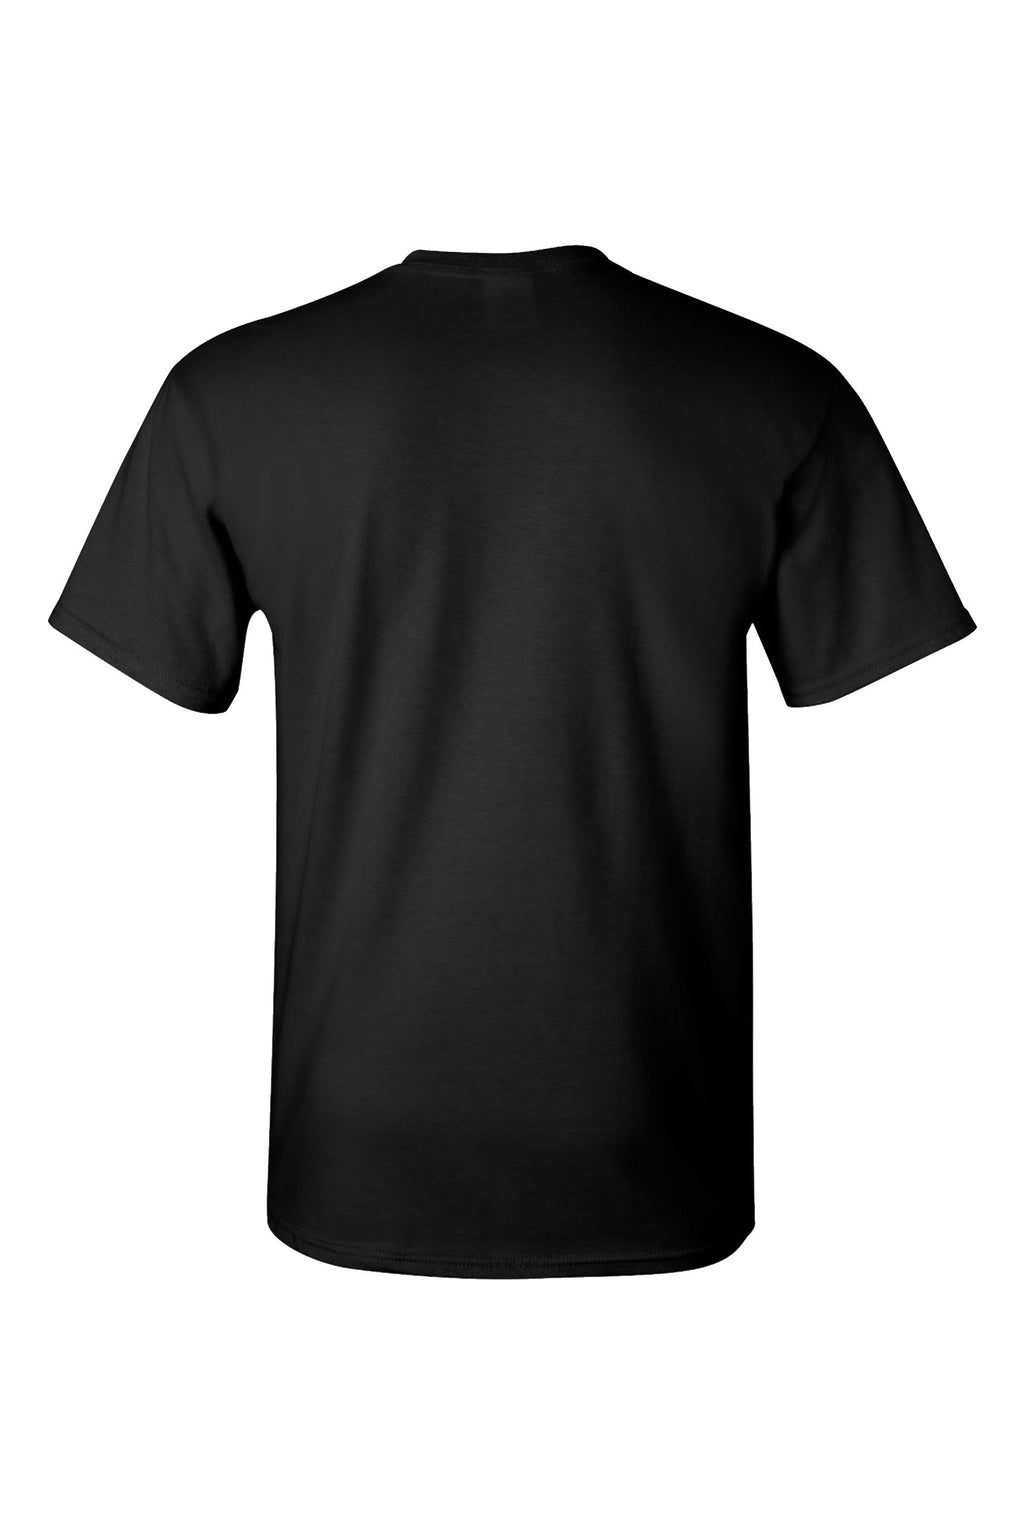 Unisex I Work For Money, For Loyalty Hire A Dog Short Sleeve Shirt